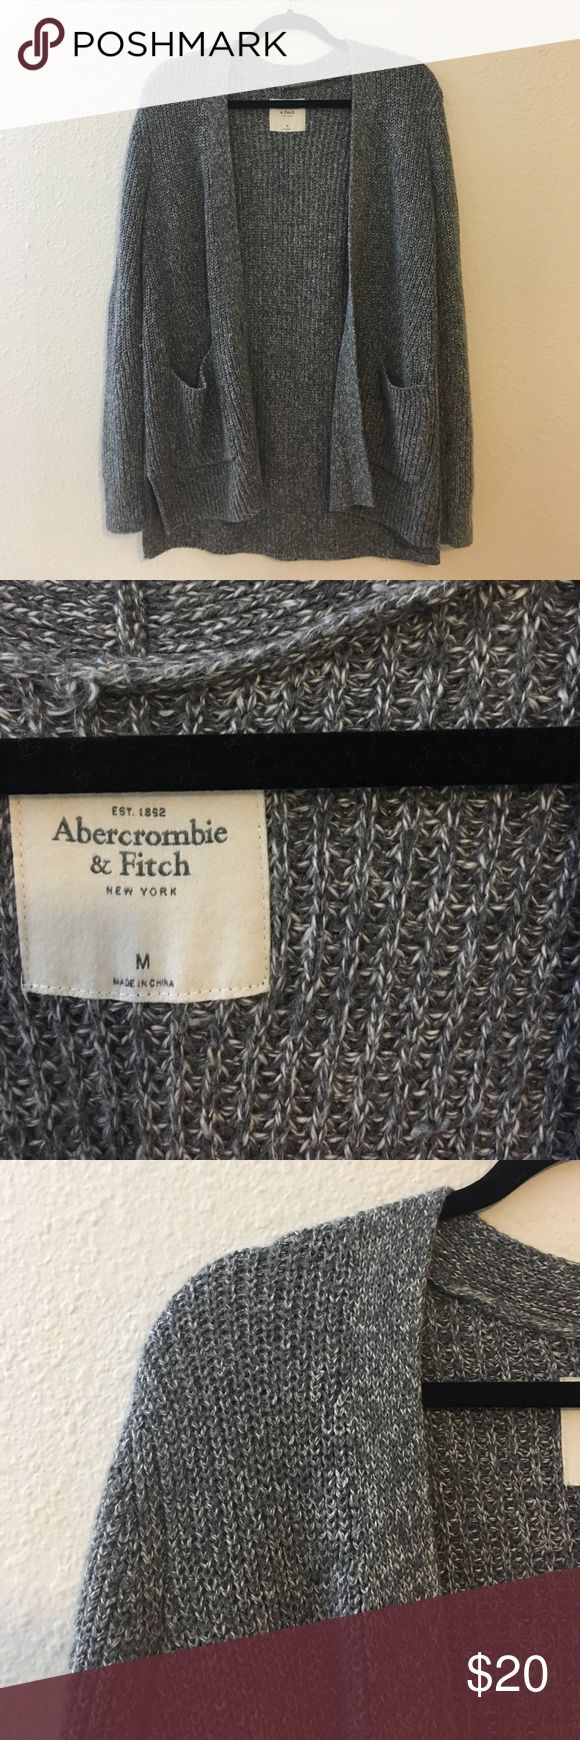 Abercrombie and Fitch Grey Cardigan Thick material, good for staying warm ∙ worn a few times ∙ perfect with leggings Abercrombie & Fitch Sweaters Cardigans